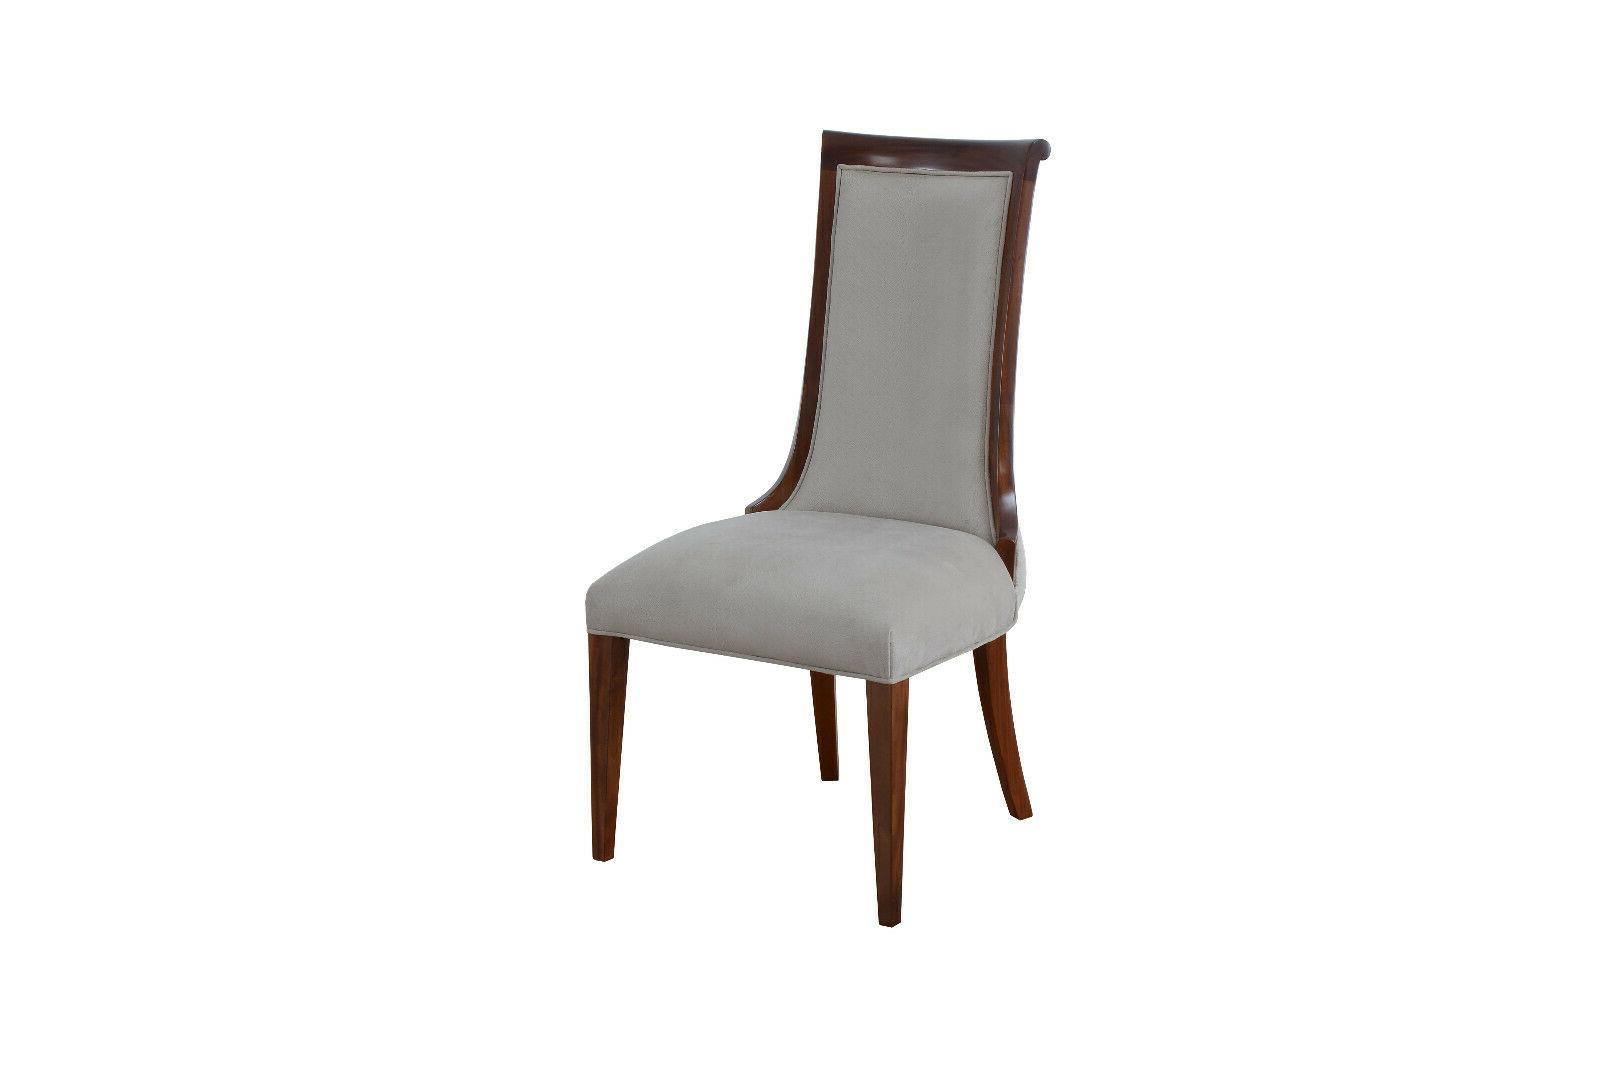 11Pc Luxury Dining Table Leaf Chair Upholstered Fabric